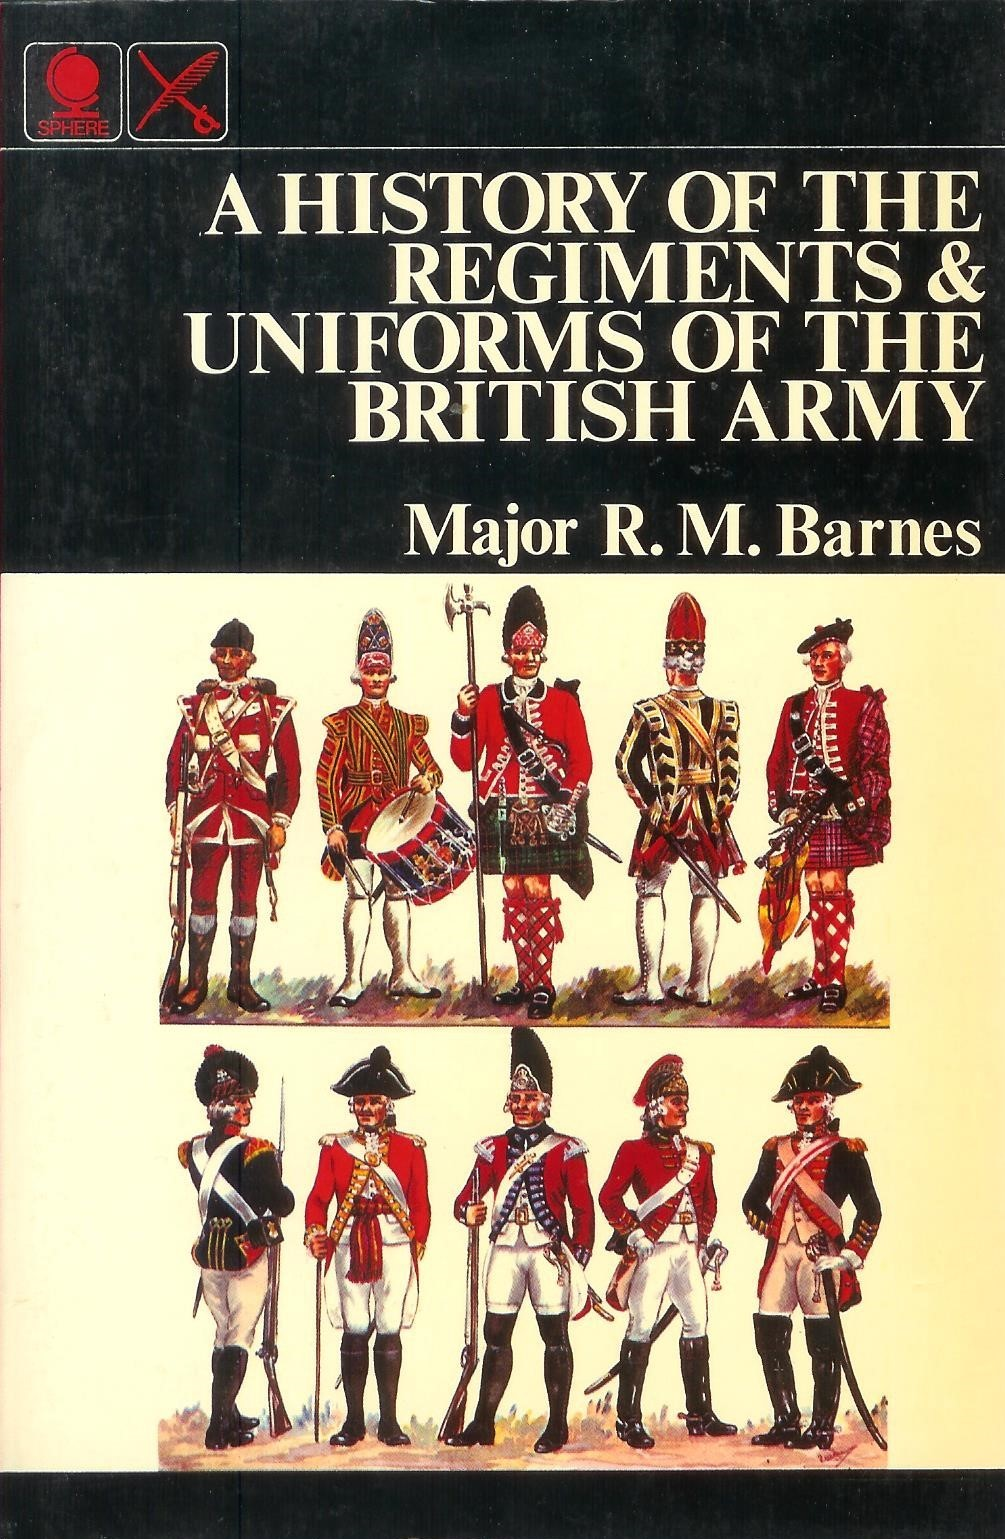 A History of The Regiments and Uniforms of The British Army